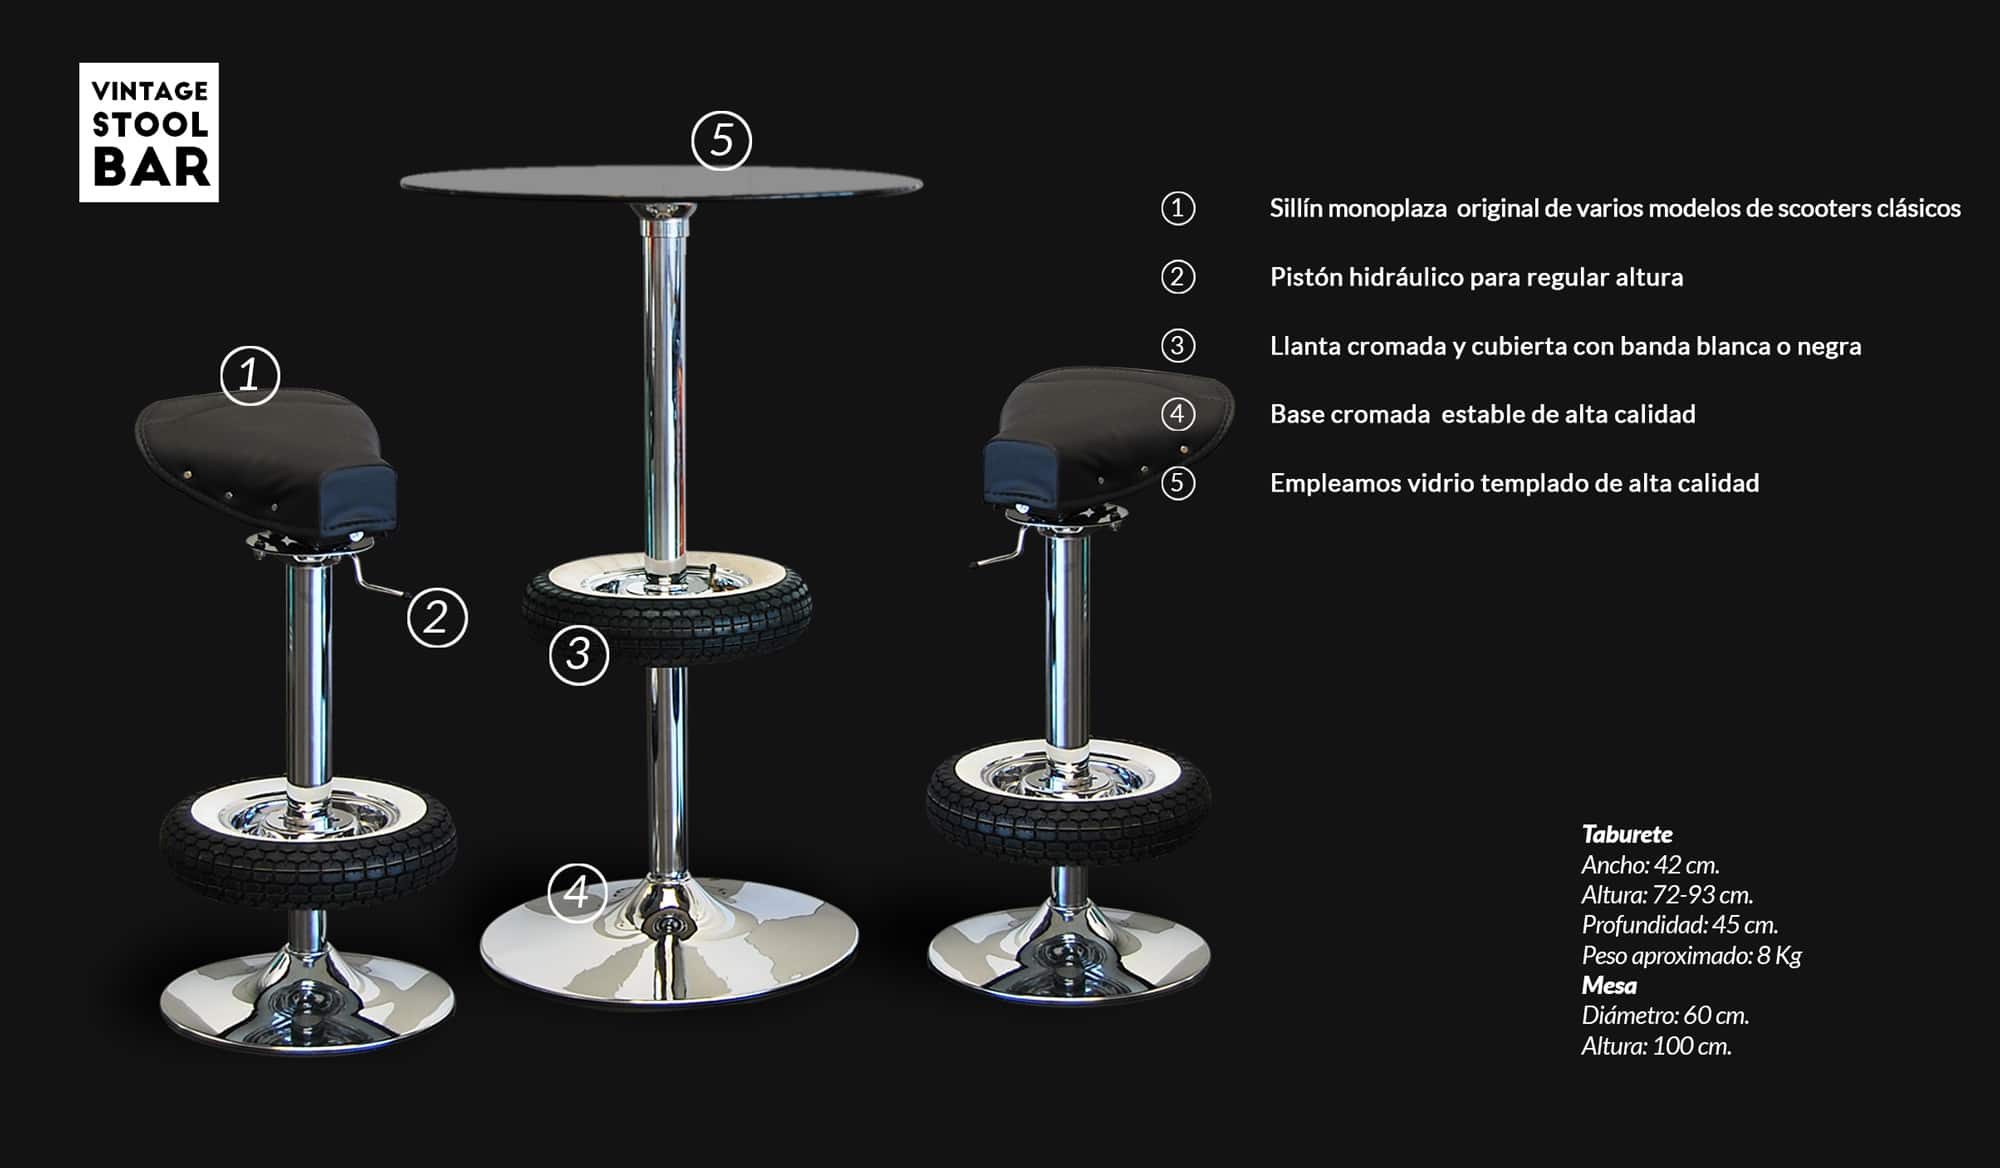 Vintage Stool Bar Especificationes Tecnicas